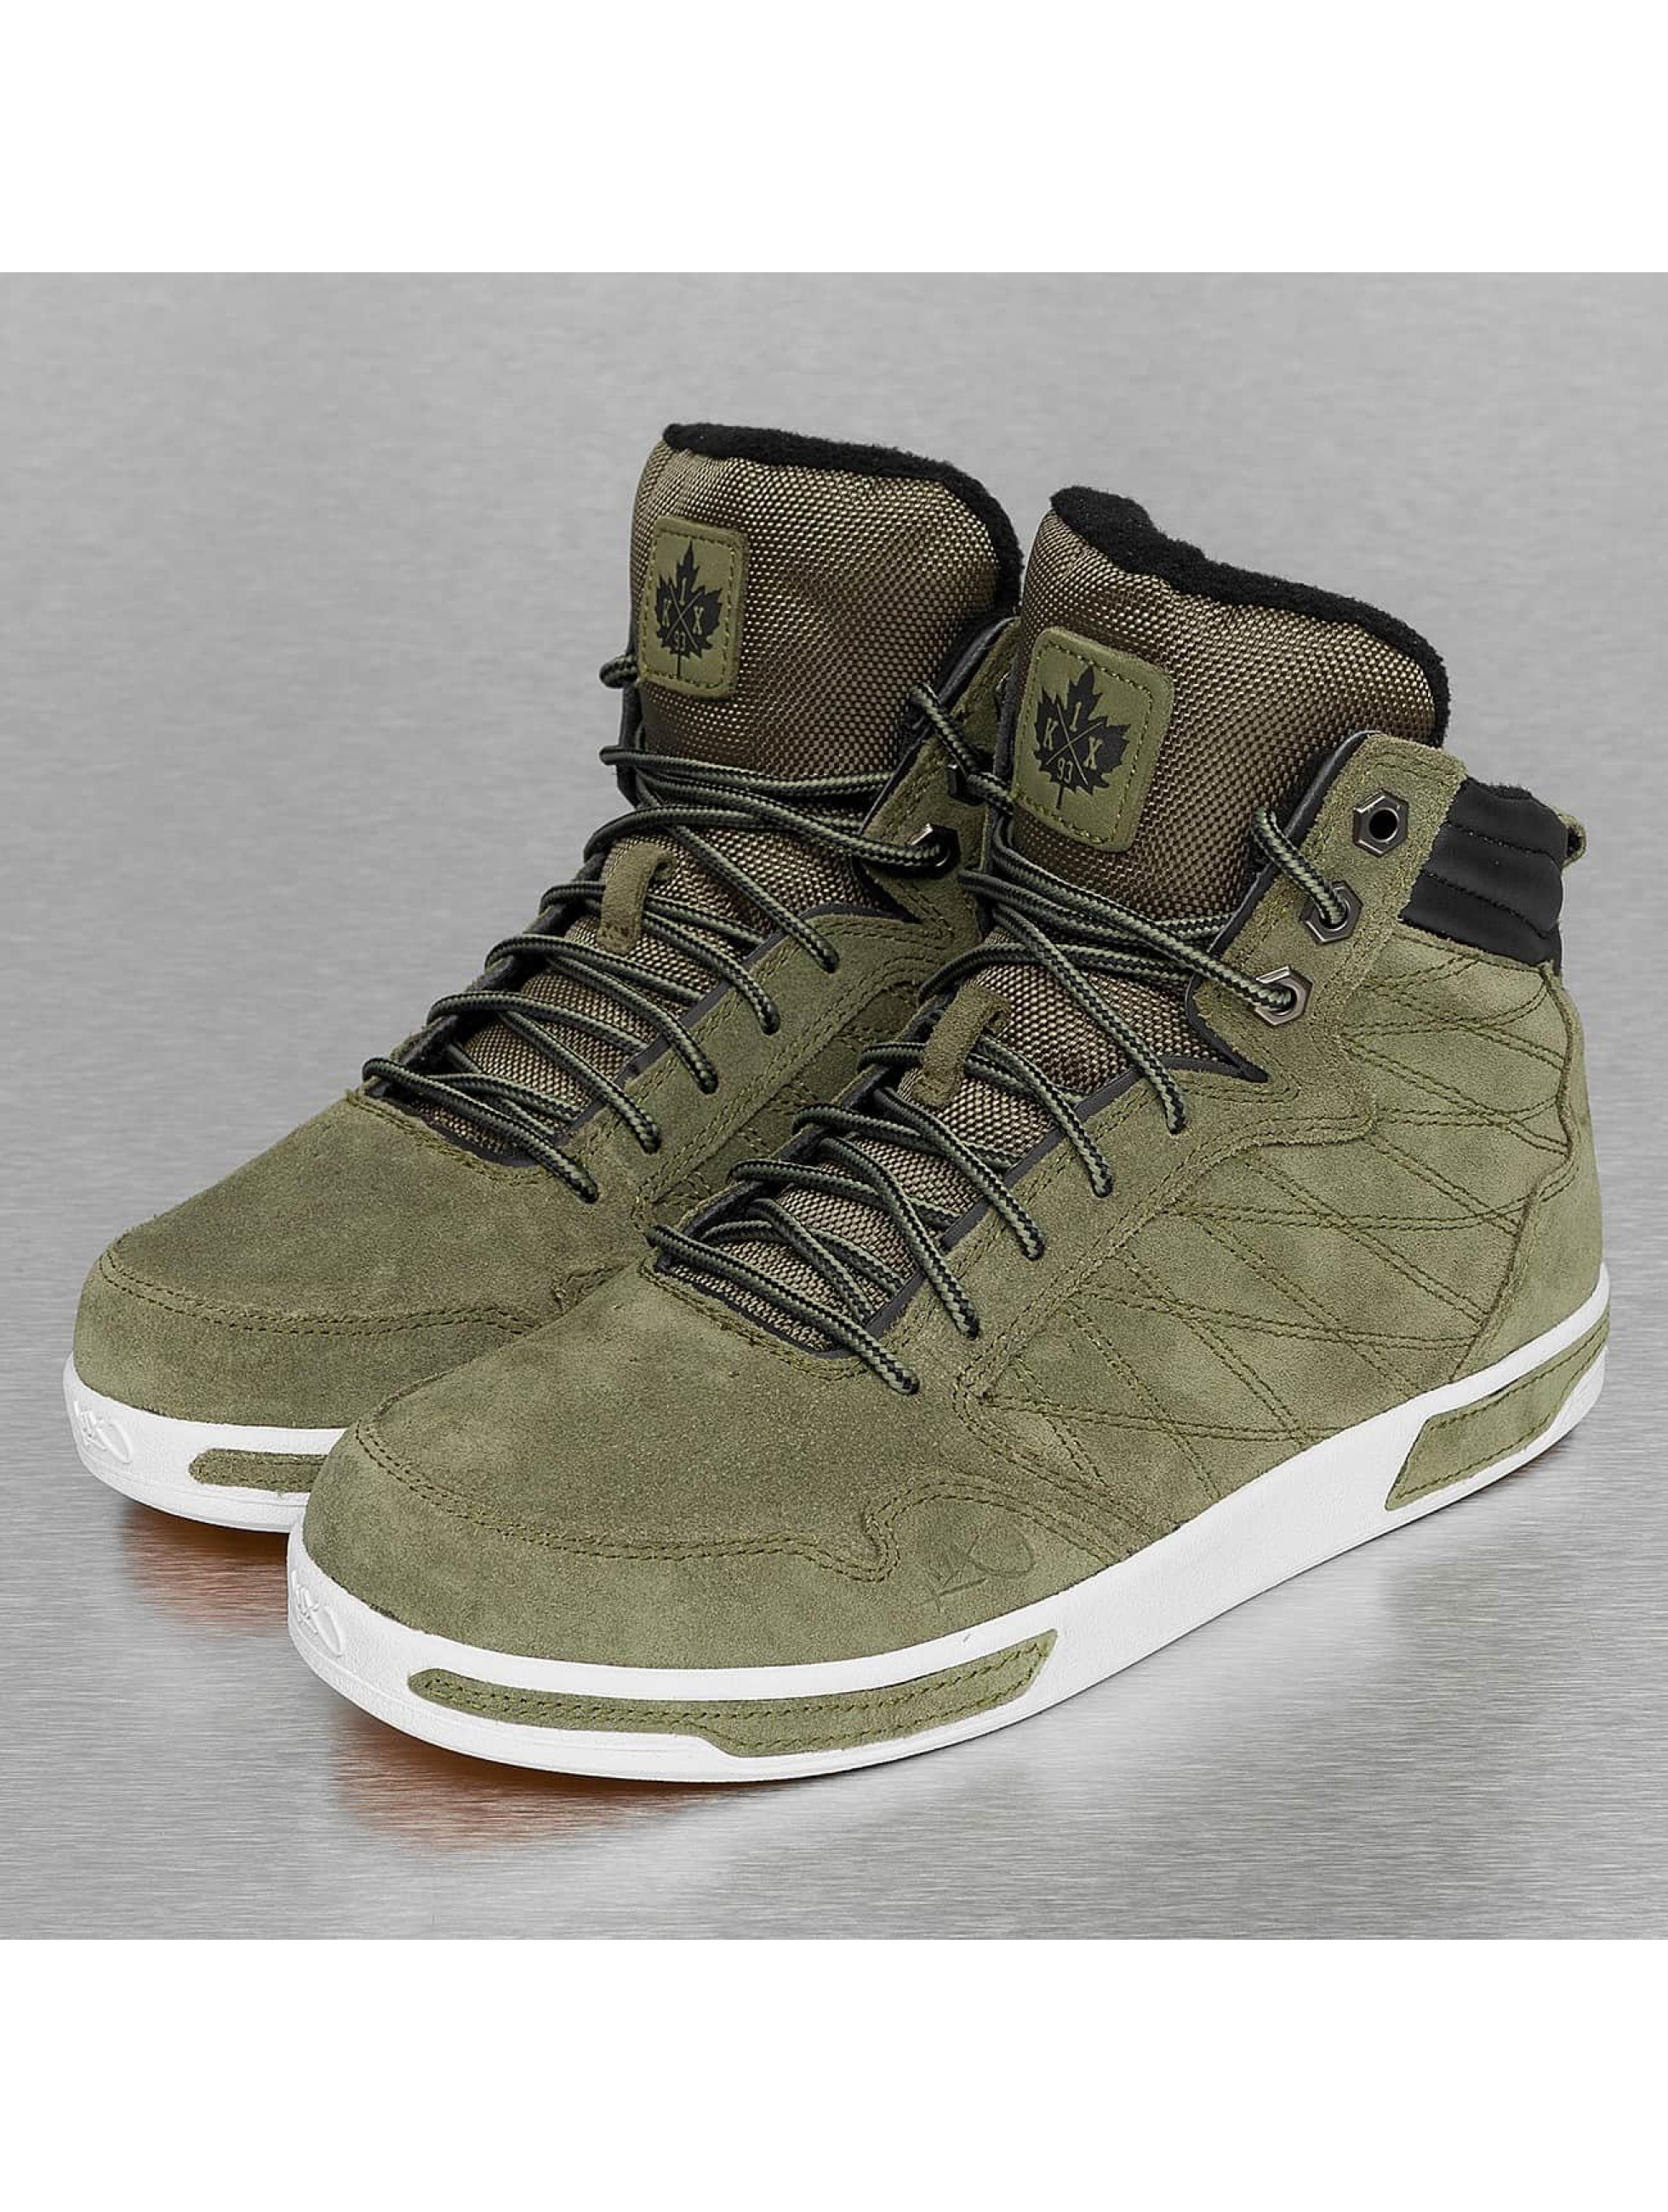 Sneaker H1top in olive